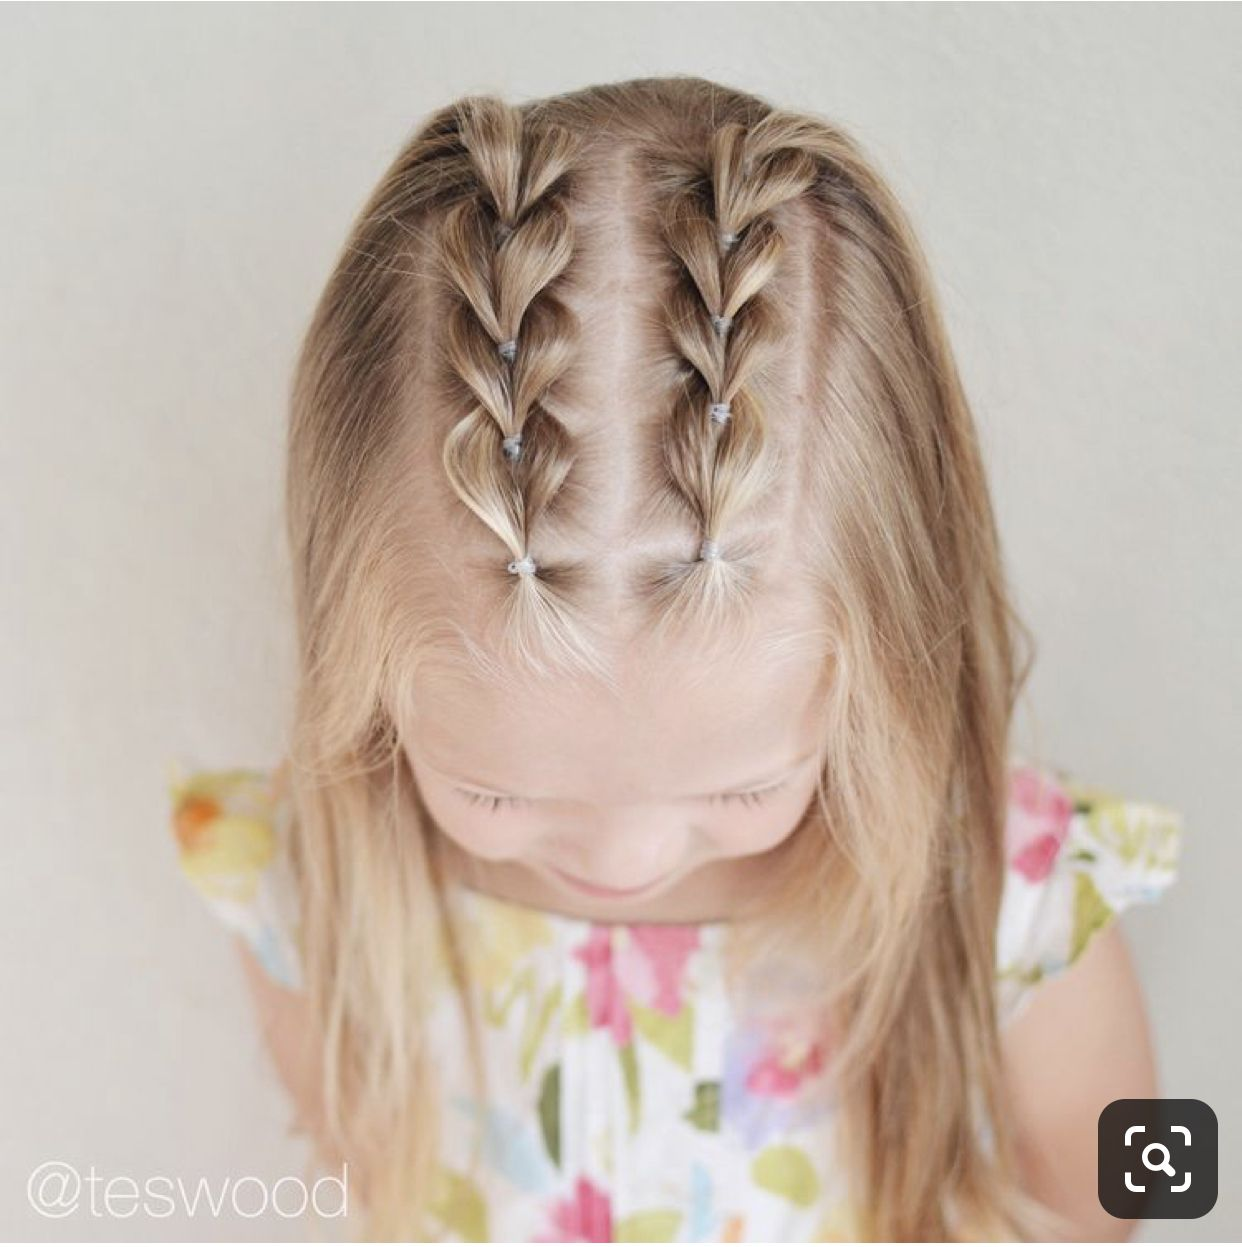 Pin By Cristina P On Baby Hair Baby Hairstyles Little Girl Hairstyles Hair Styles